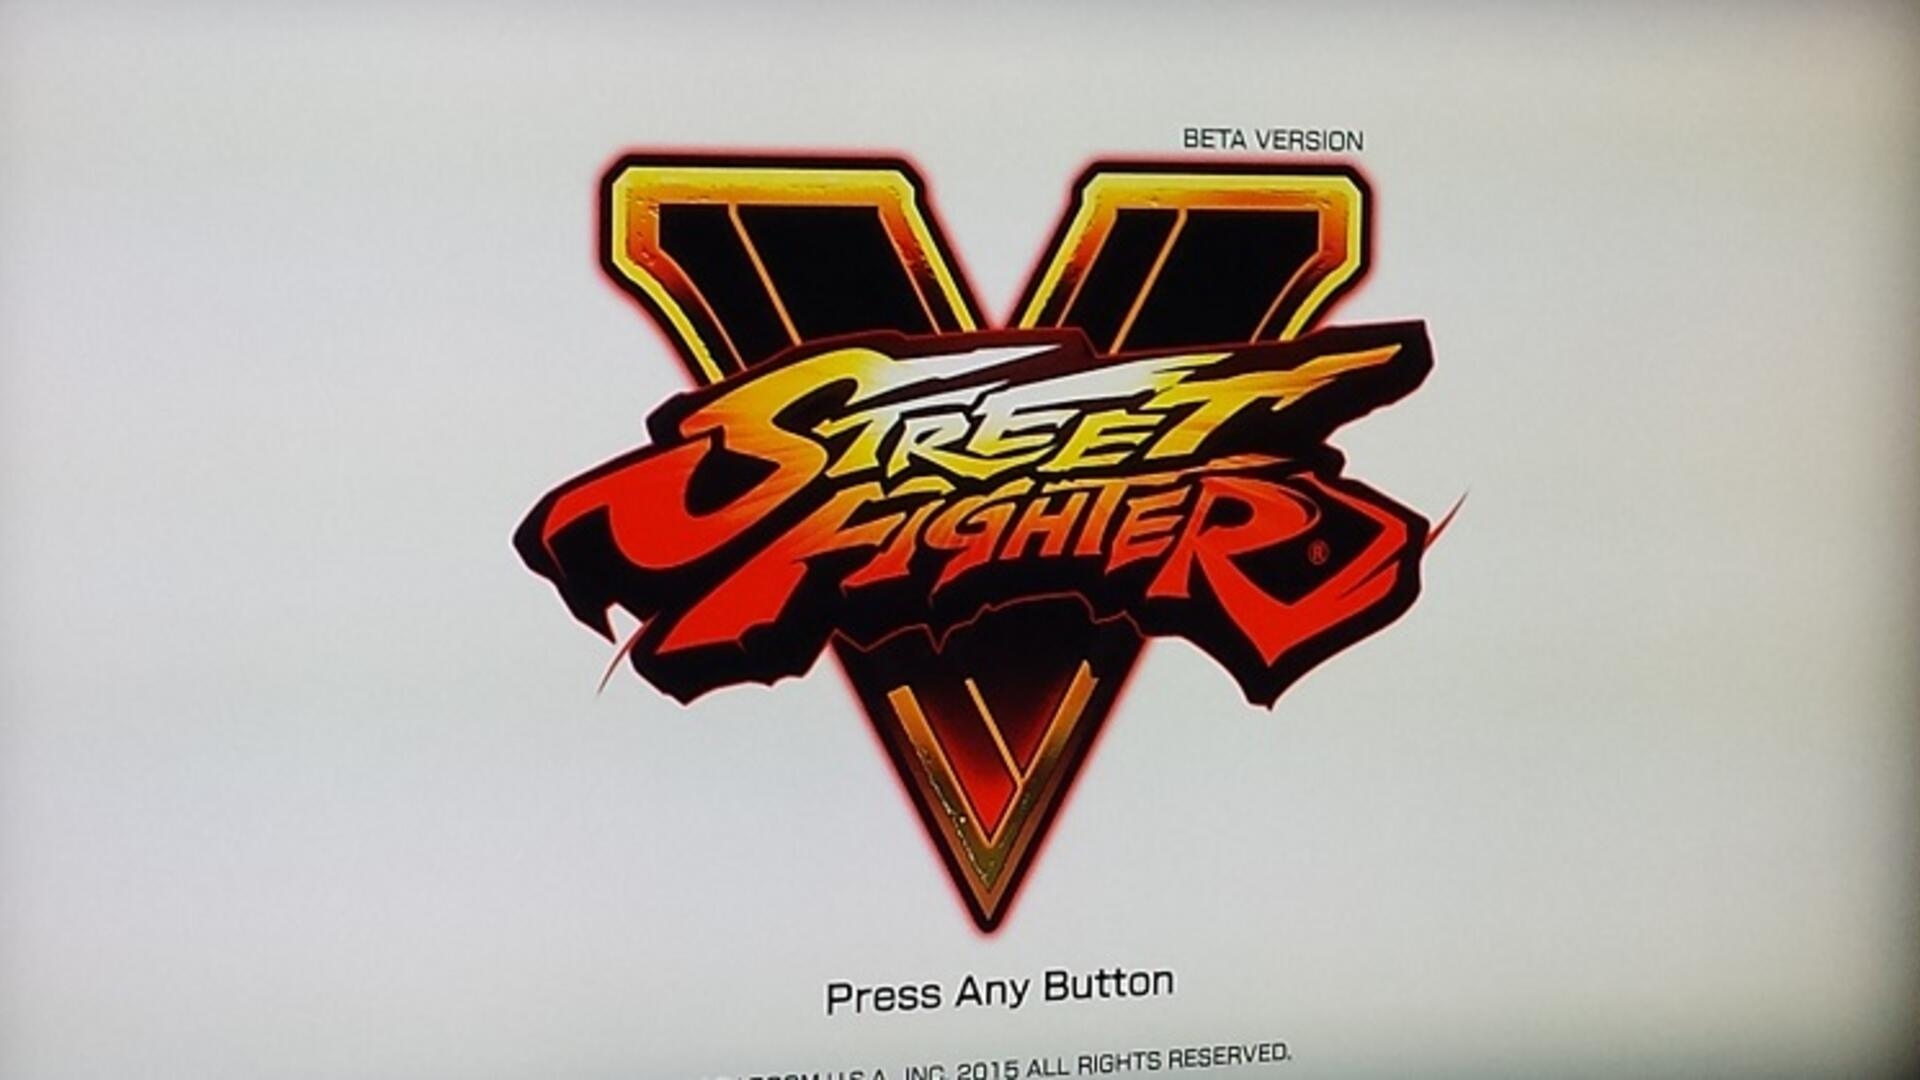 Street Fighter Beta Diary: Day One (And Maybe Only)